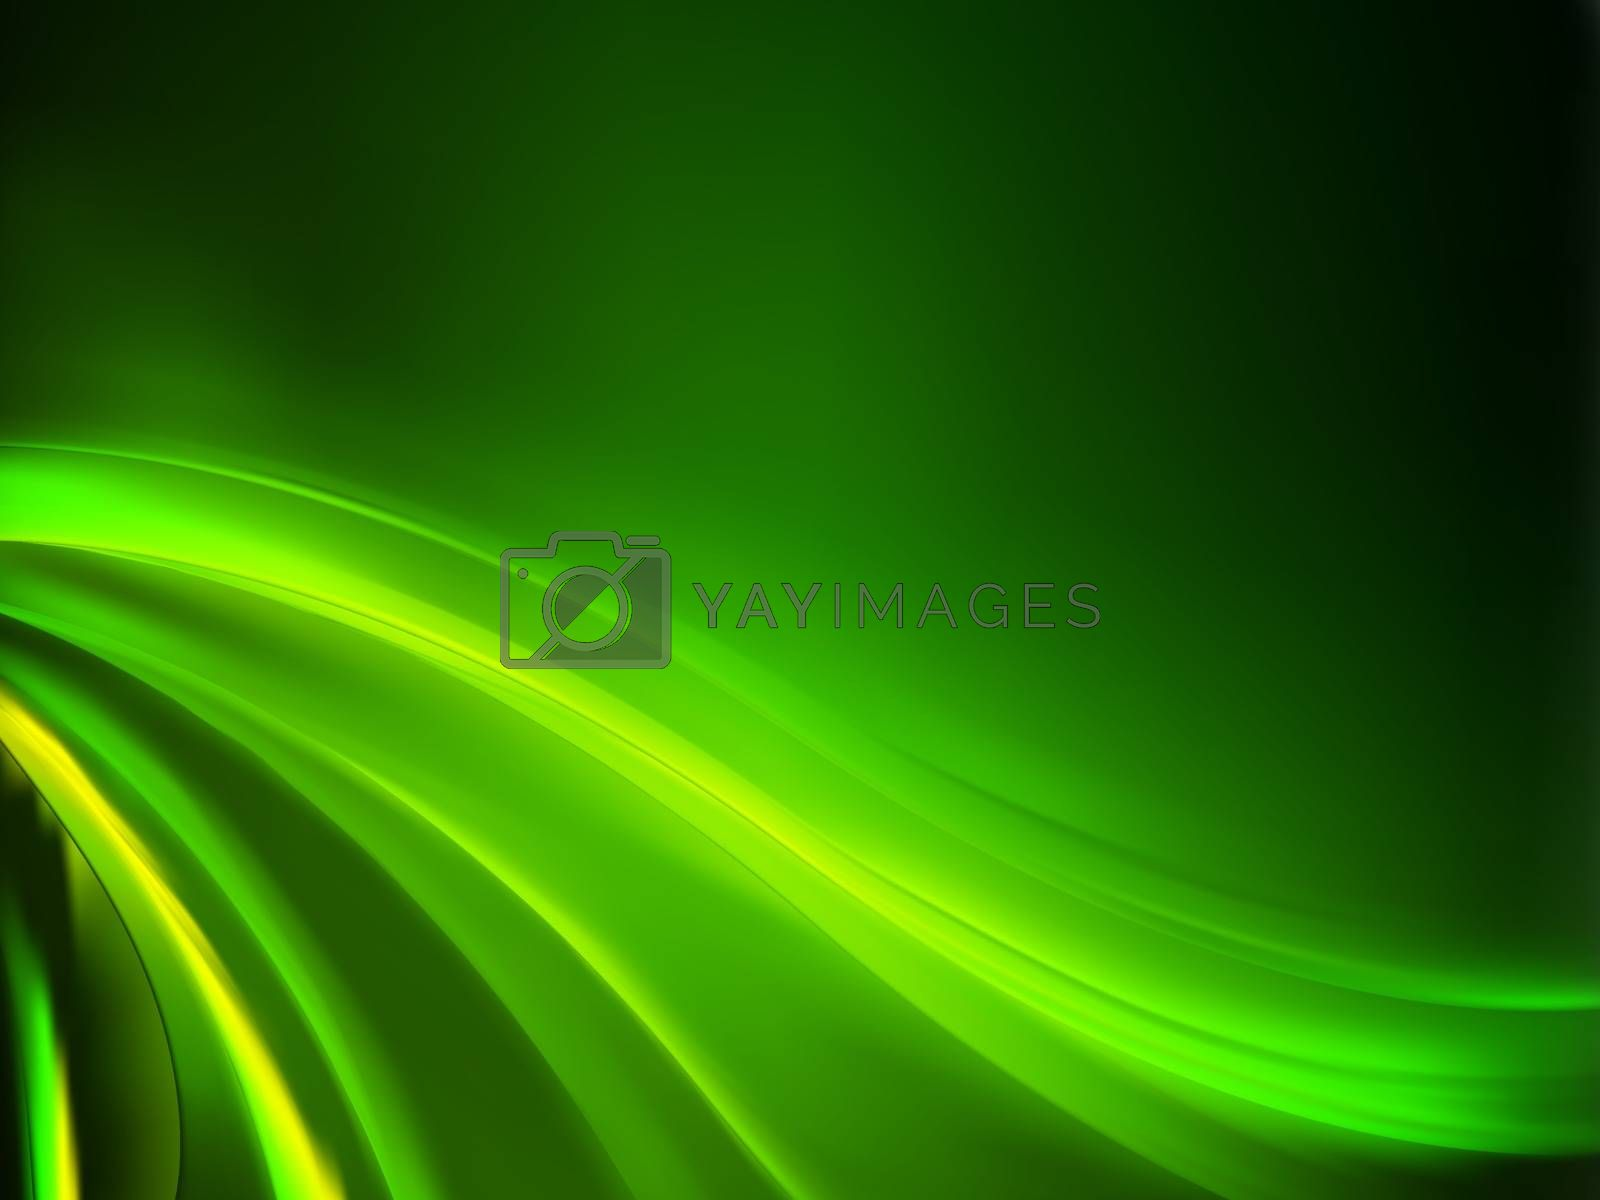 Abstract green background. EPS 8 by Petrov_Vladimir